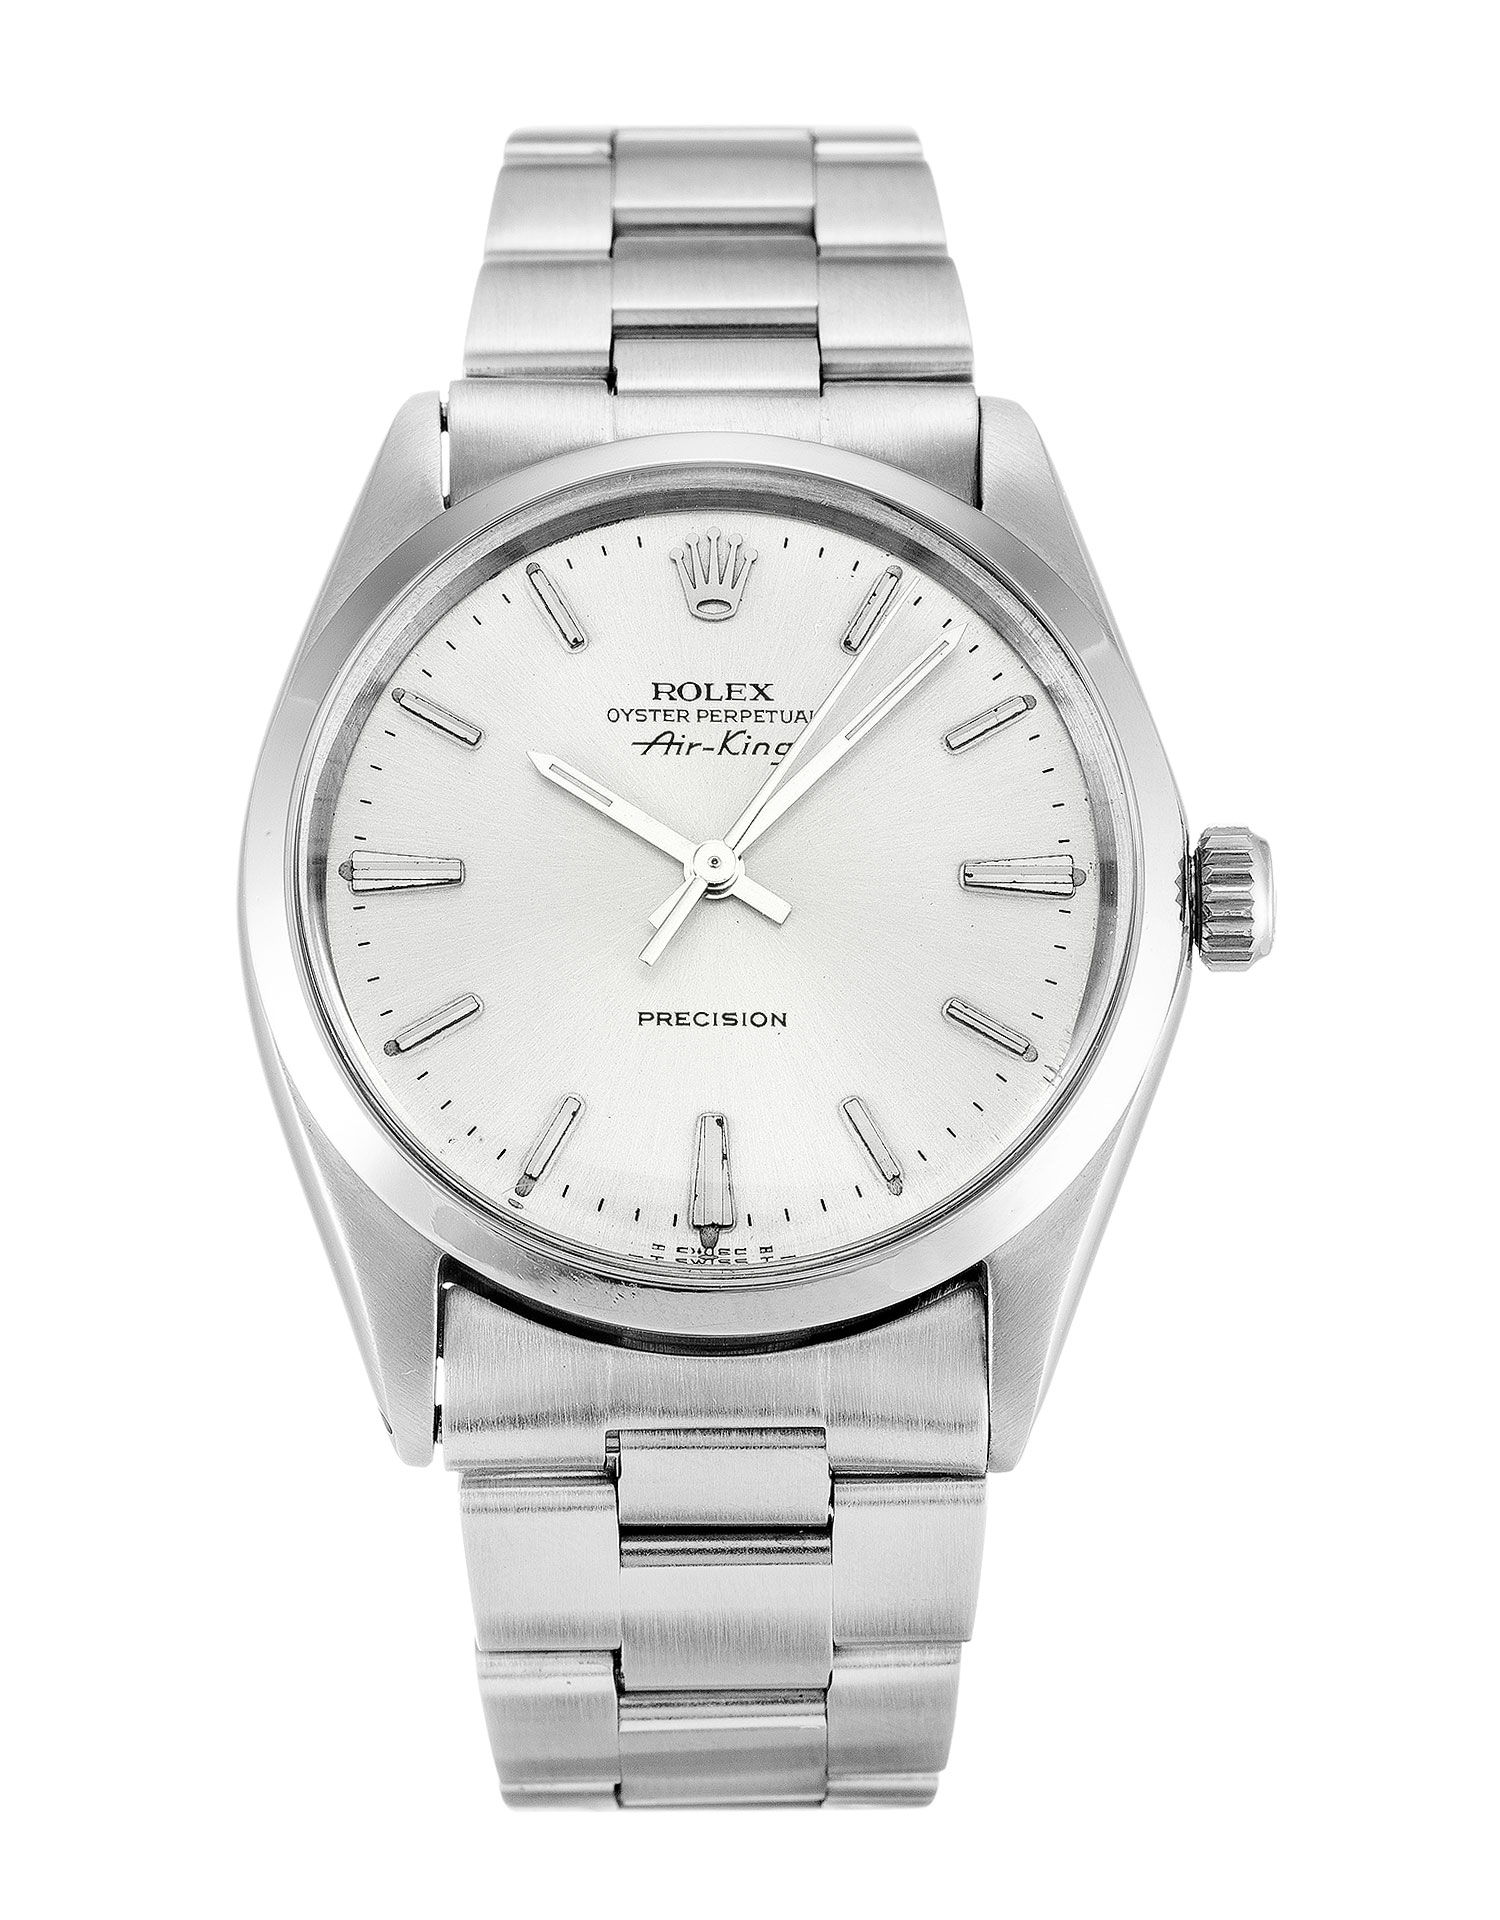 Rolex Air-king 5500 Unisex 34 Mm Steel Case Automatic Movement – iapac.to